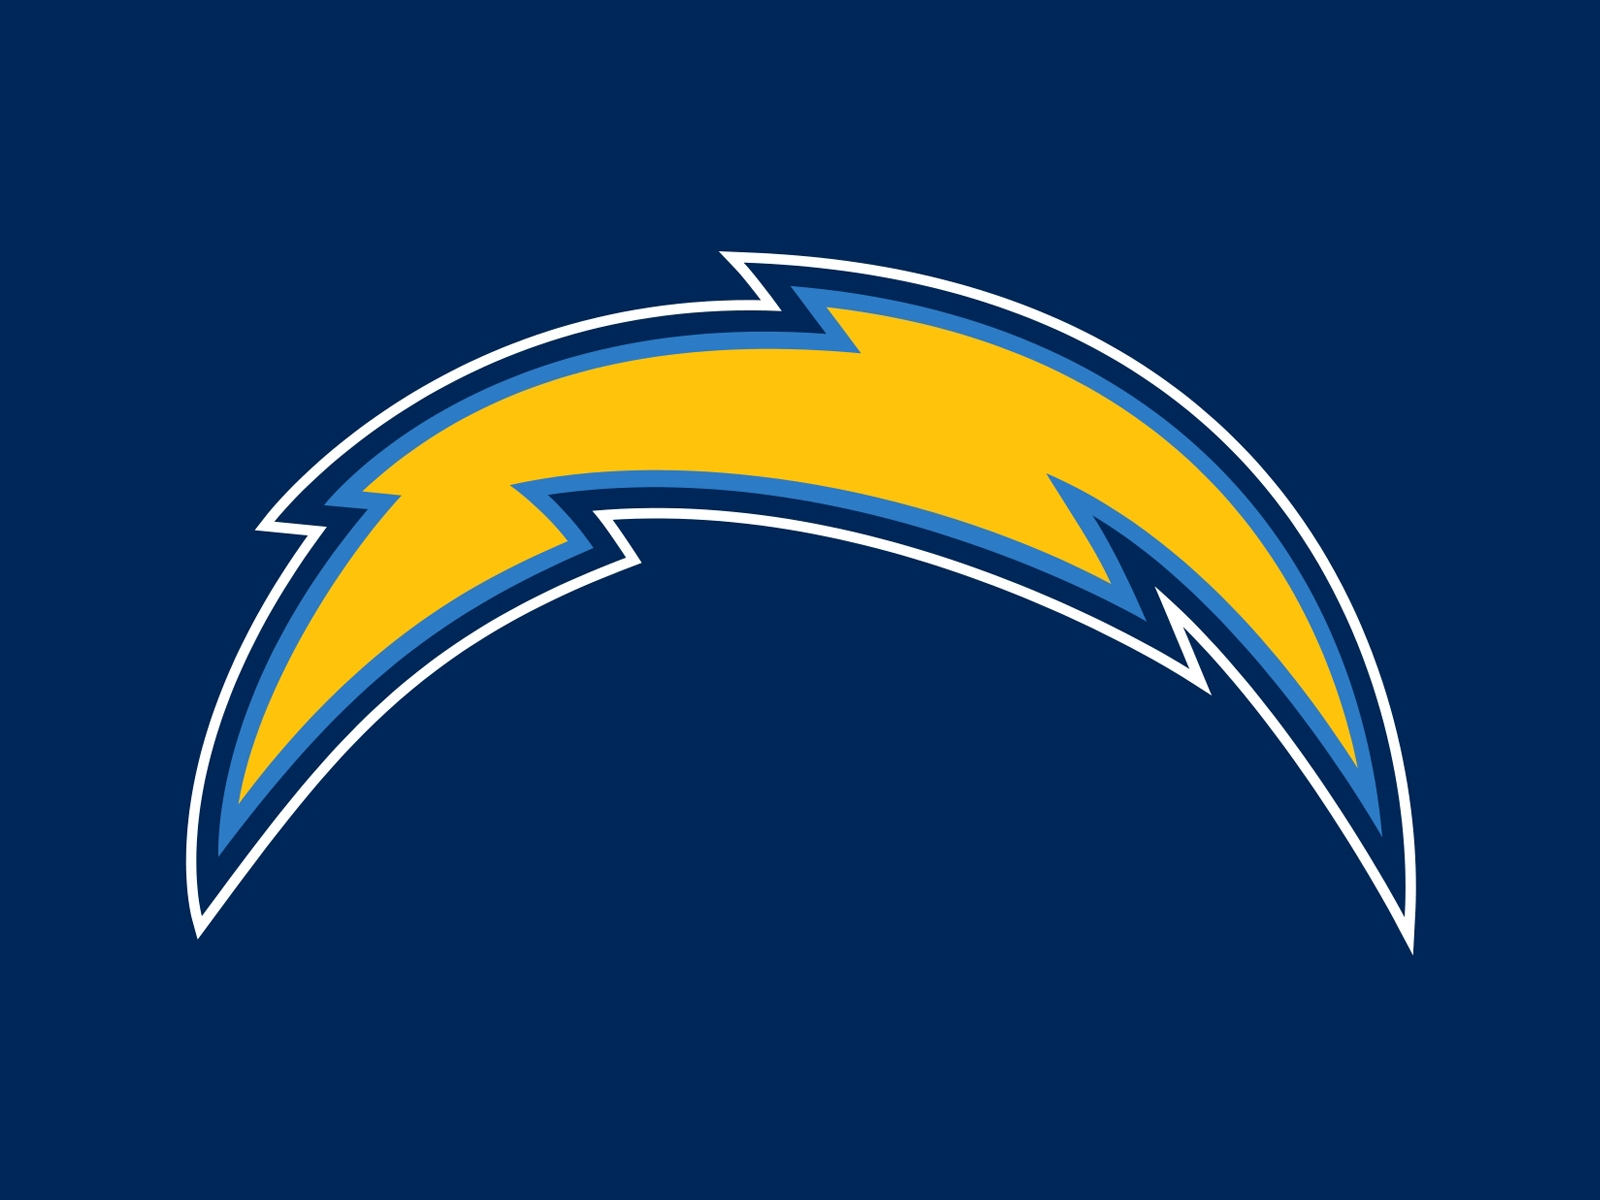 San-diego-chargers-logo-wallpaper